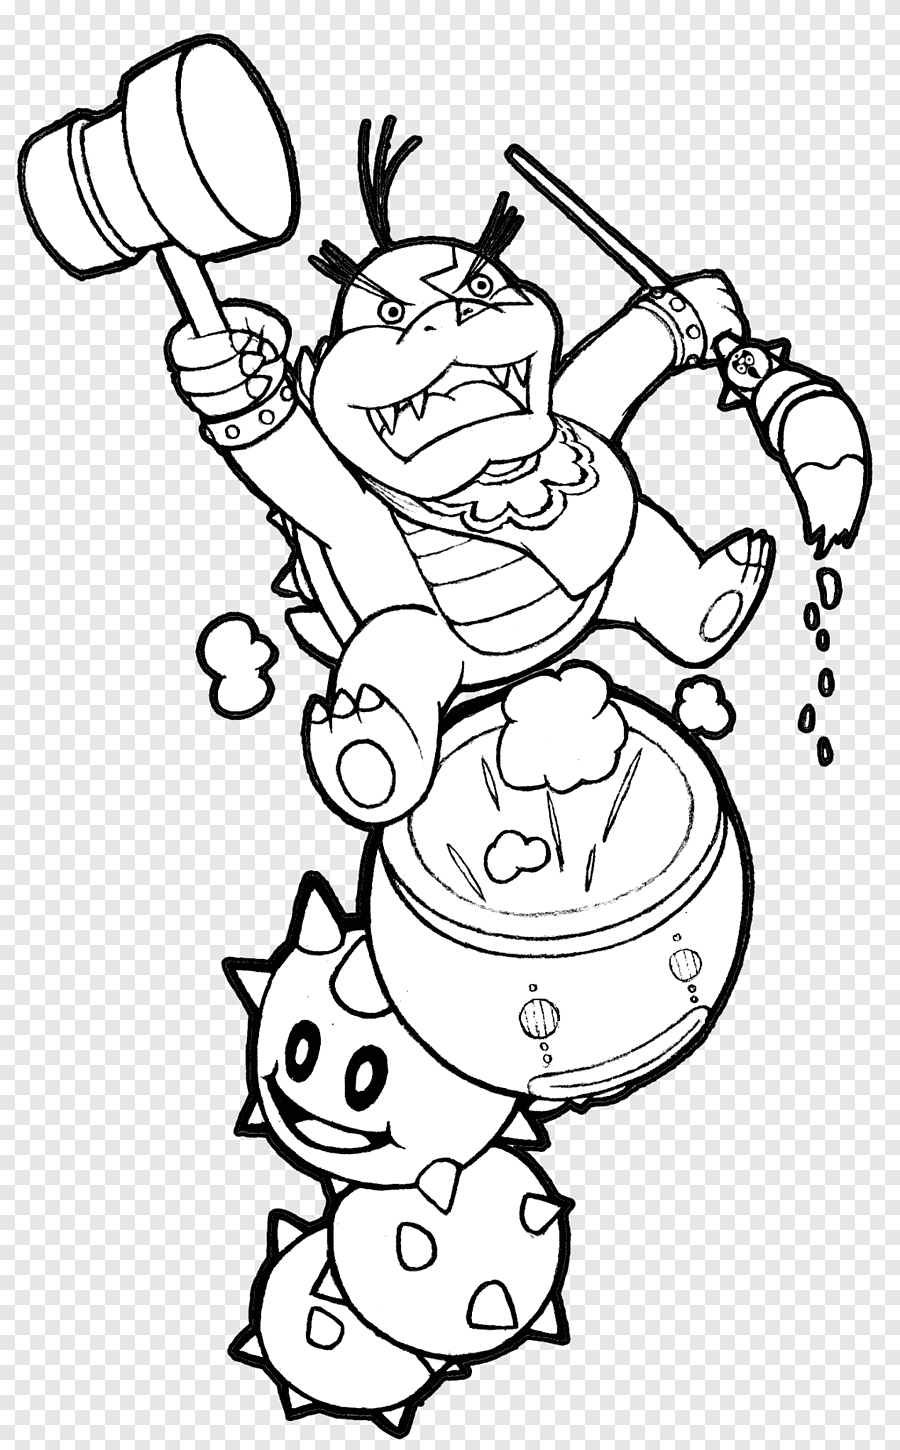 Koopalings Coloring Pages : koopalings, coloring, pages, Bowser, Super, Mario, Bros., Coloring, Koopalings,, Mario,, Angle,, White, PNGEgg